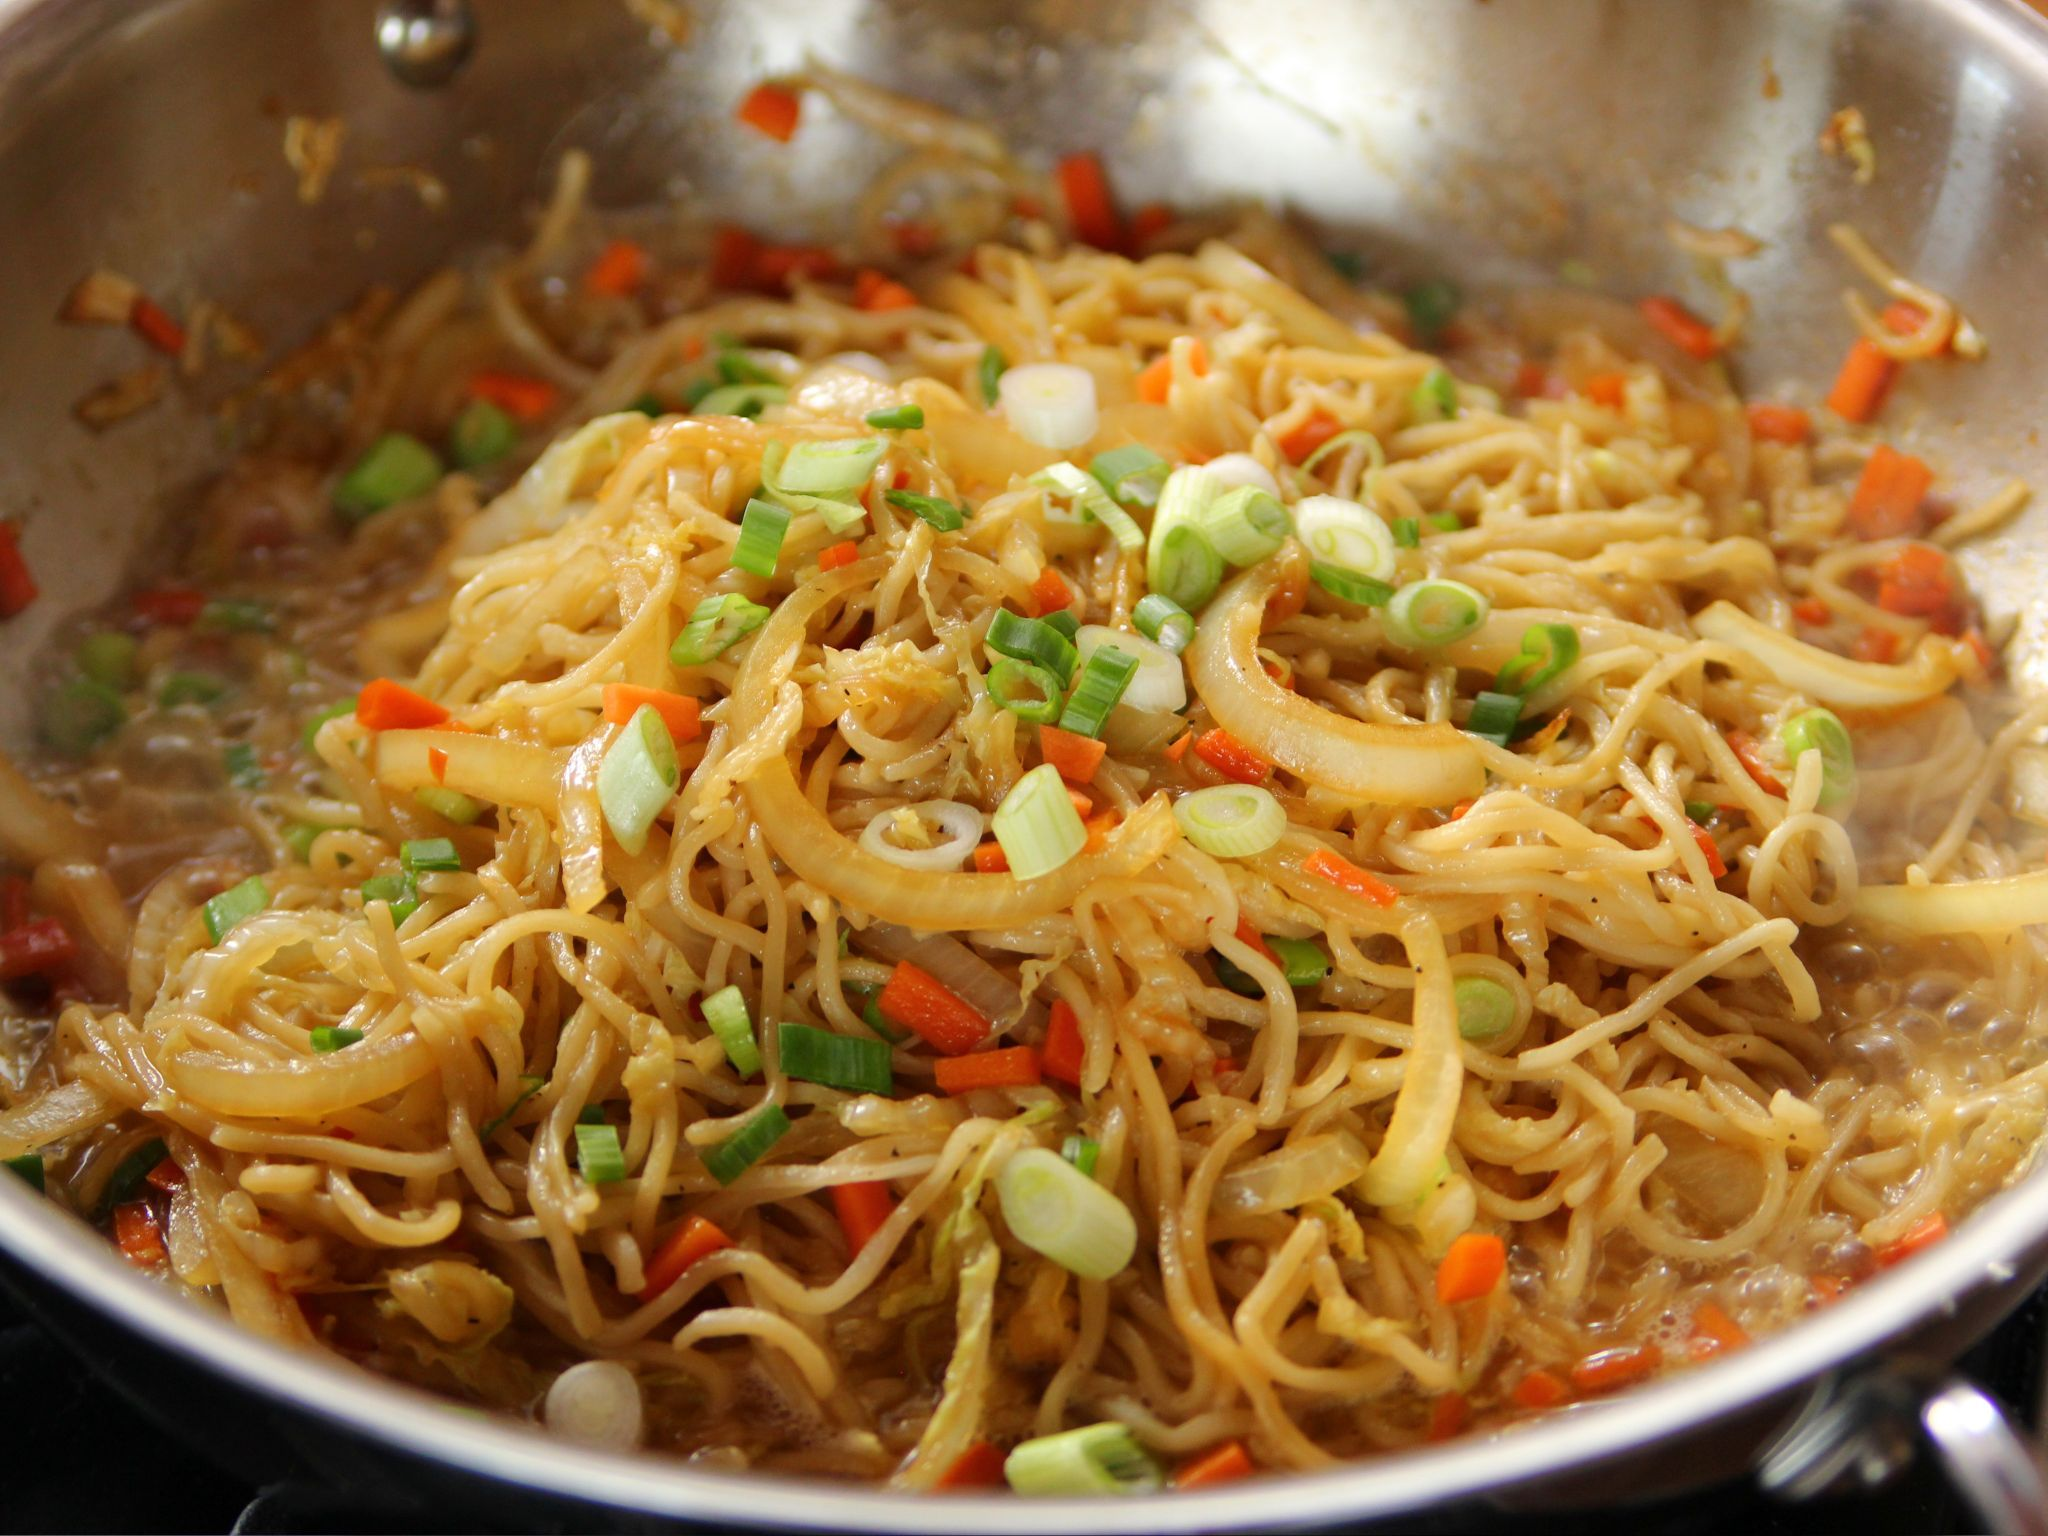 Chow mein recipe cluck cluck chicken pinterest chow mein chow mein recipe cluck cluck chicken pinterest chow mein star and pioneer woman forumfinder Gallery